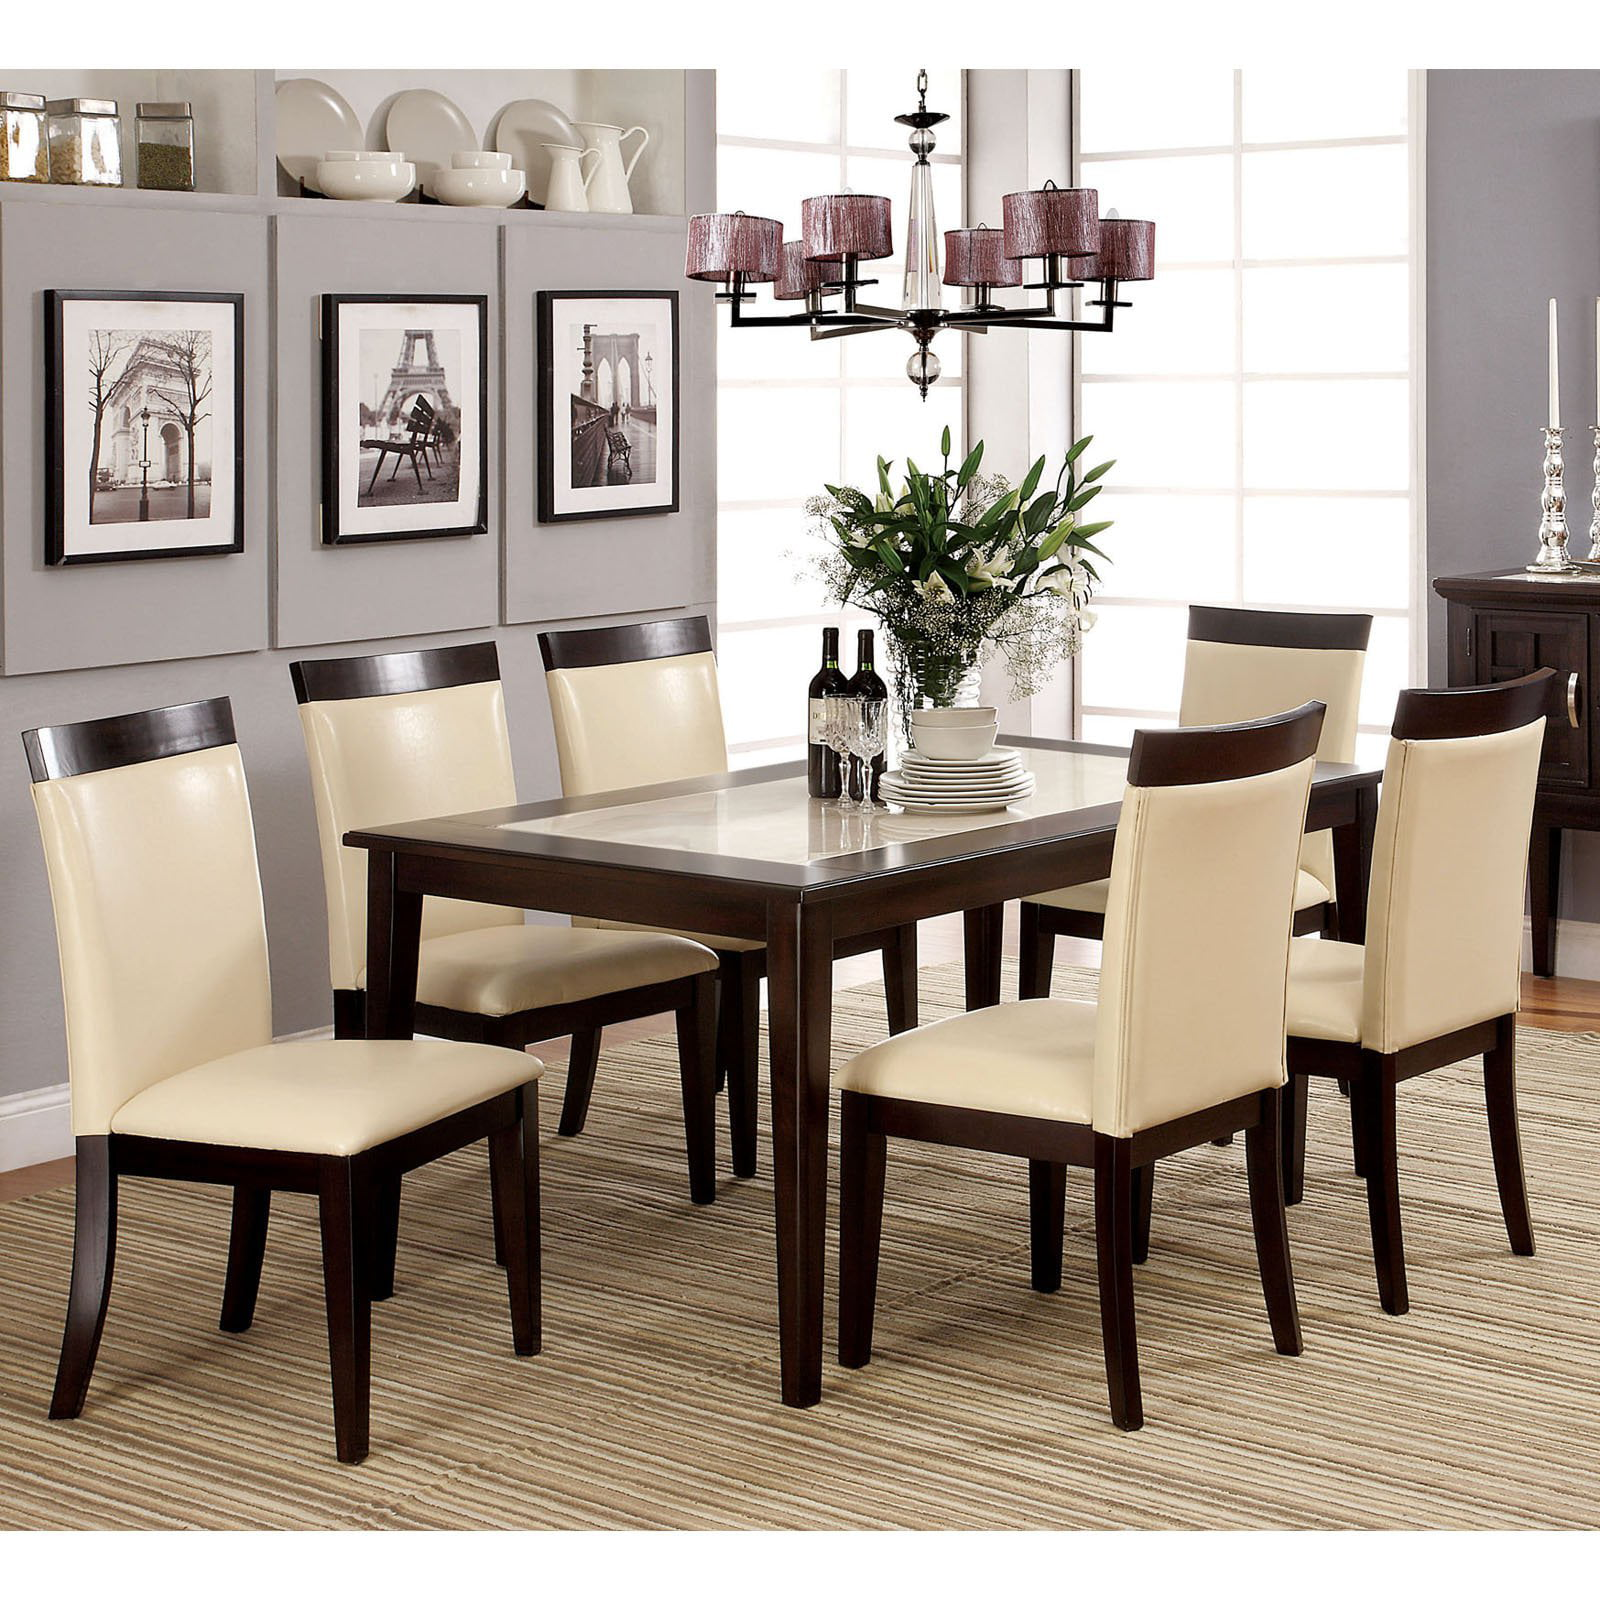 mainstays 5-piece faux marble top dining set - walmart